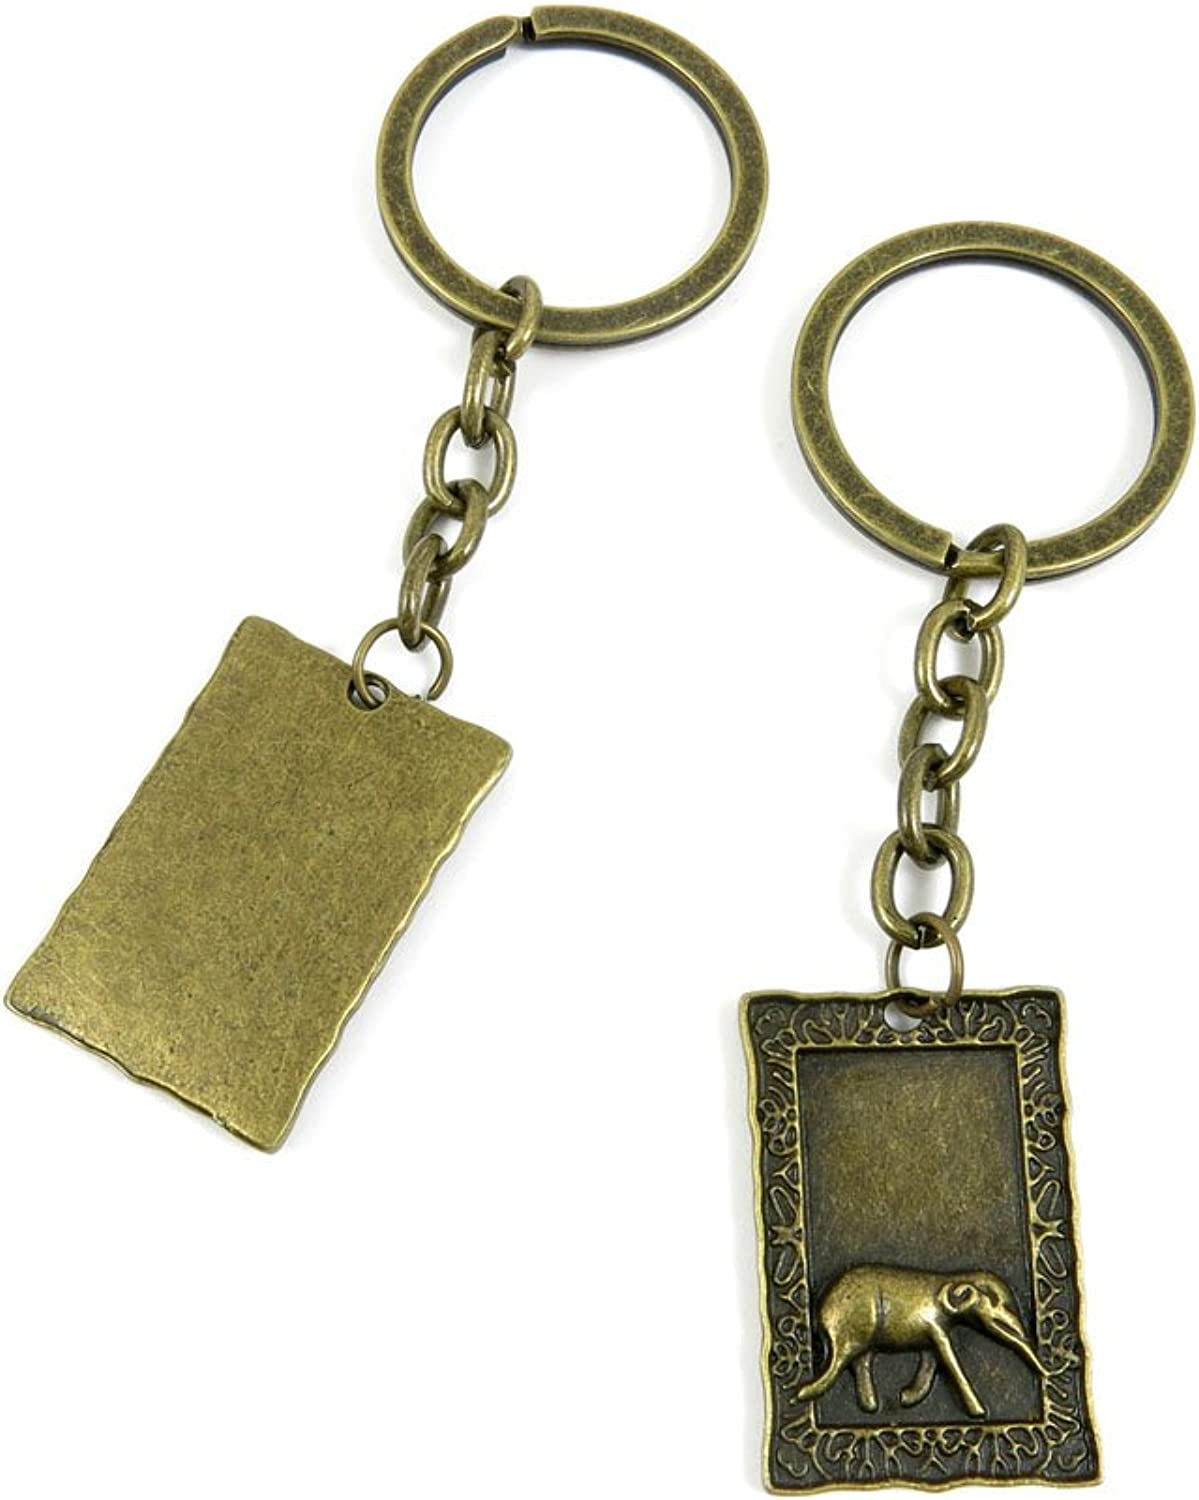 130 Pieces Fashion Jewelry Keyring Keychain Door Car Key Tag Ring Chain Supplier Supply Wholesale Bulk Lots T3LG2 Elephant Signs Tag